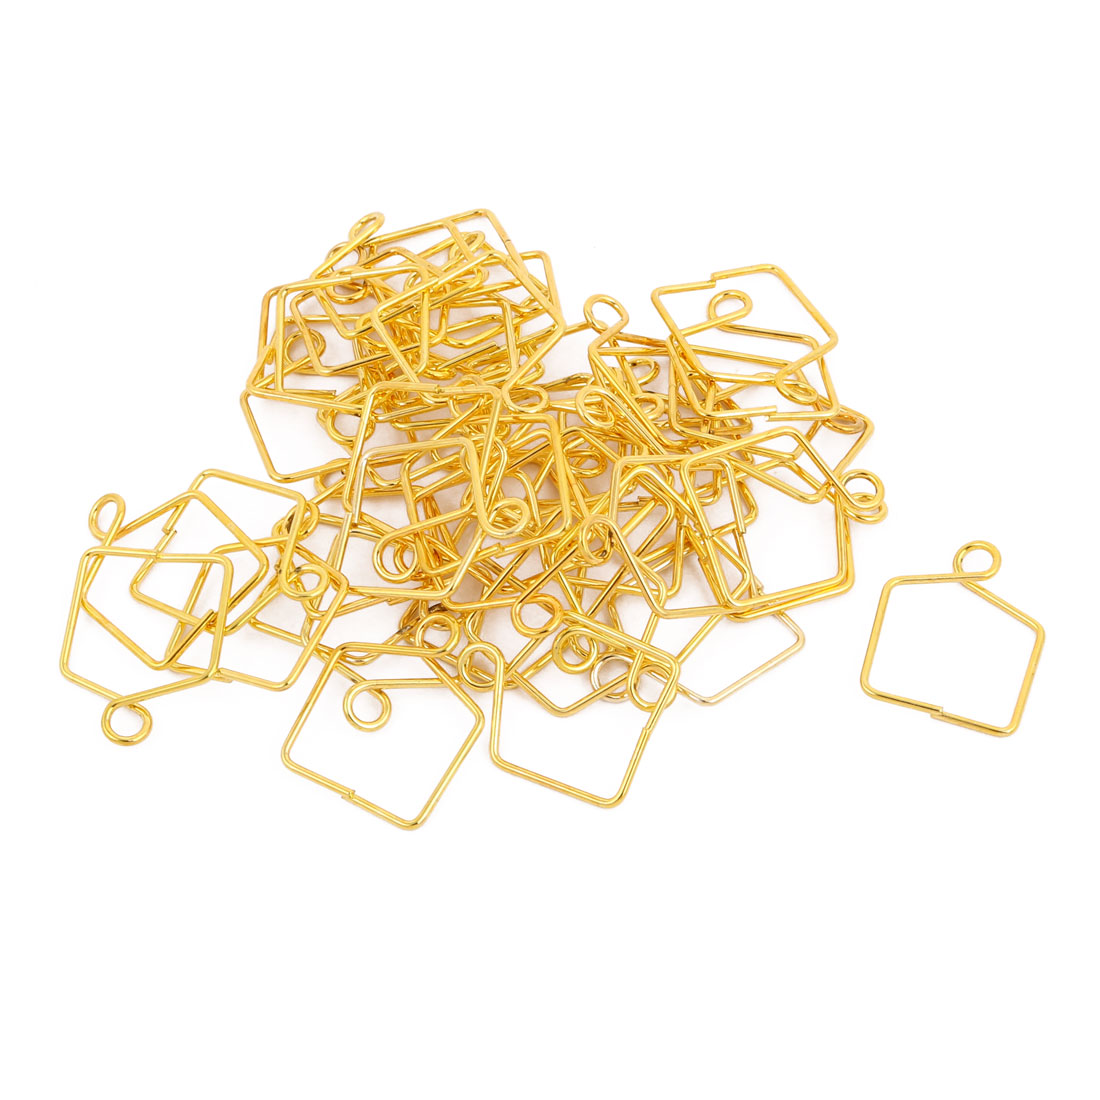 Unique Bargains 50Pcs 18mm Width Gold Tone Chandelier Connector Clip for Fastening Crystal - image 2 de 2